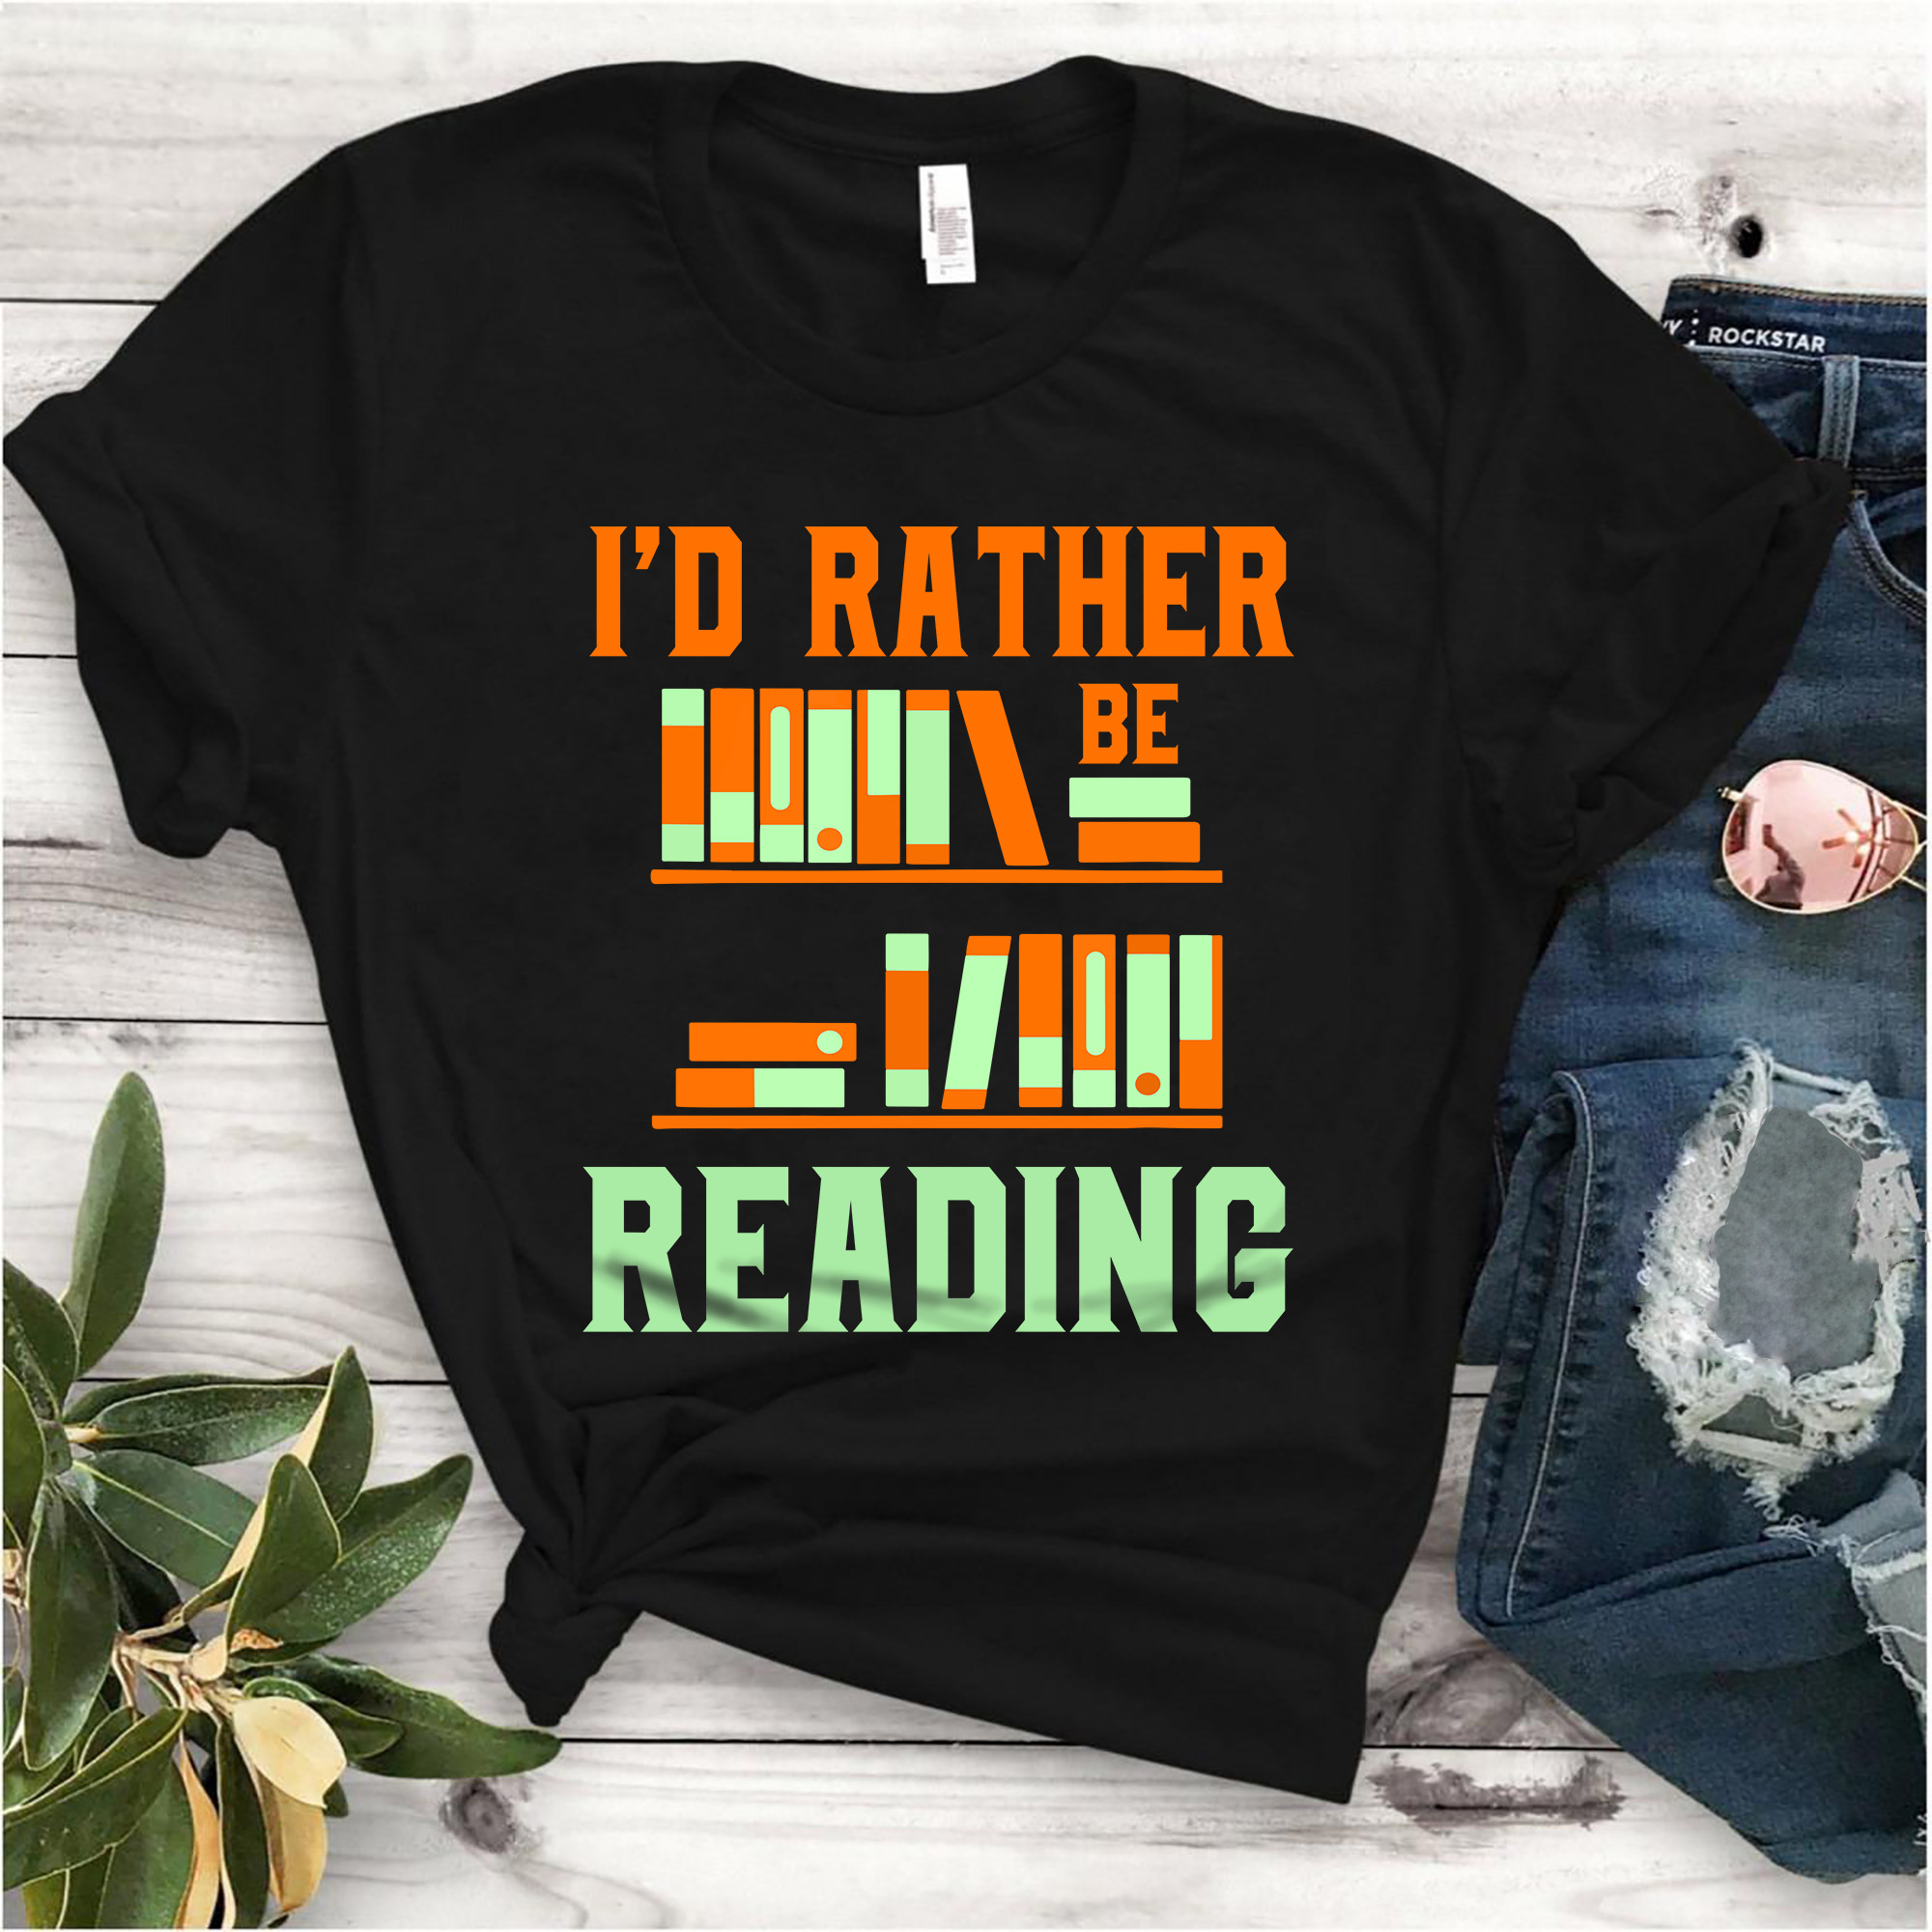 Book Shirt I'd Rather Be Reading